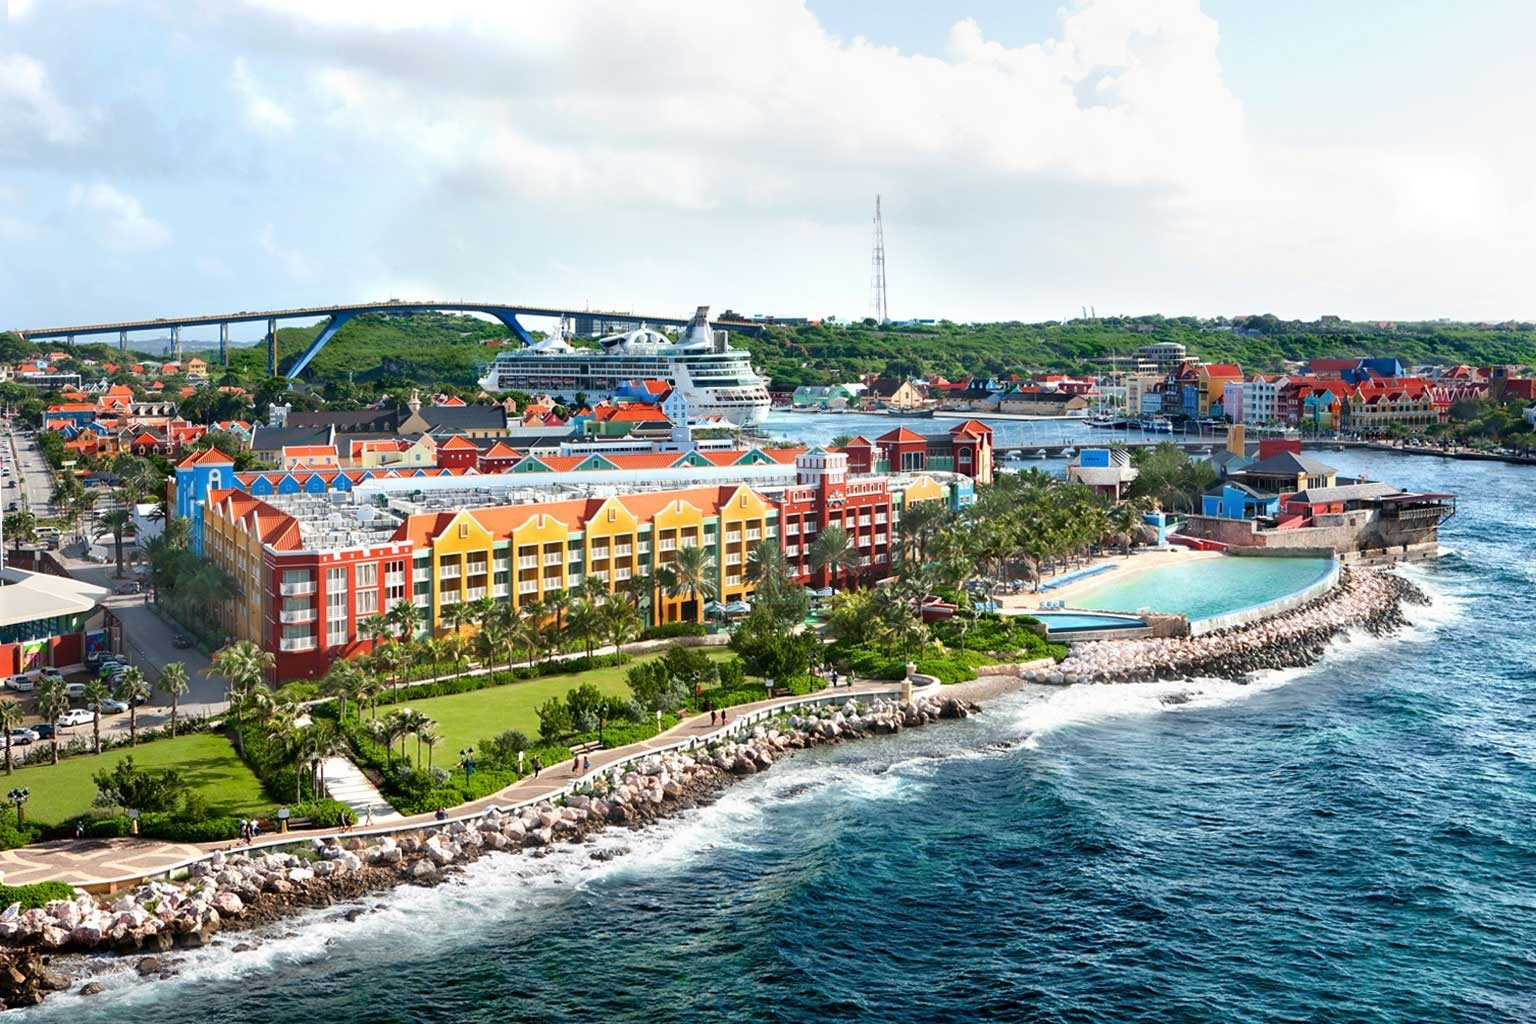 Architecture Buildings Casino Exterior Luxury Resort Scenic views Trip Ideas Waterfront sky outdoor Town Sea vacation Coast tourism amusement park caribbean Water park vehicle bay boating day